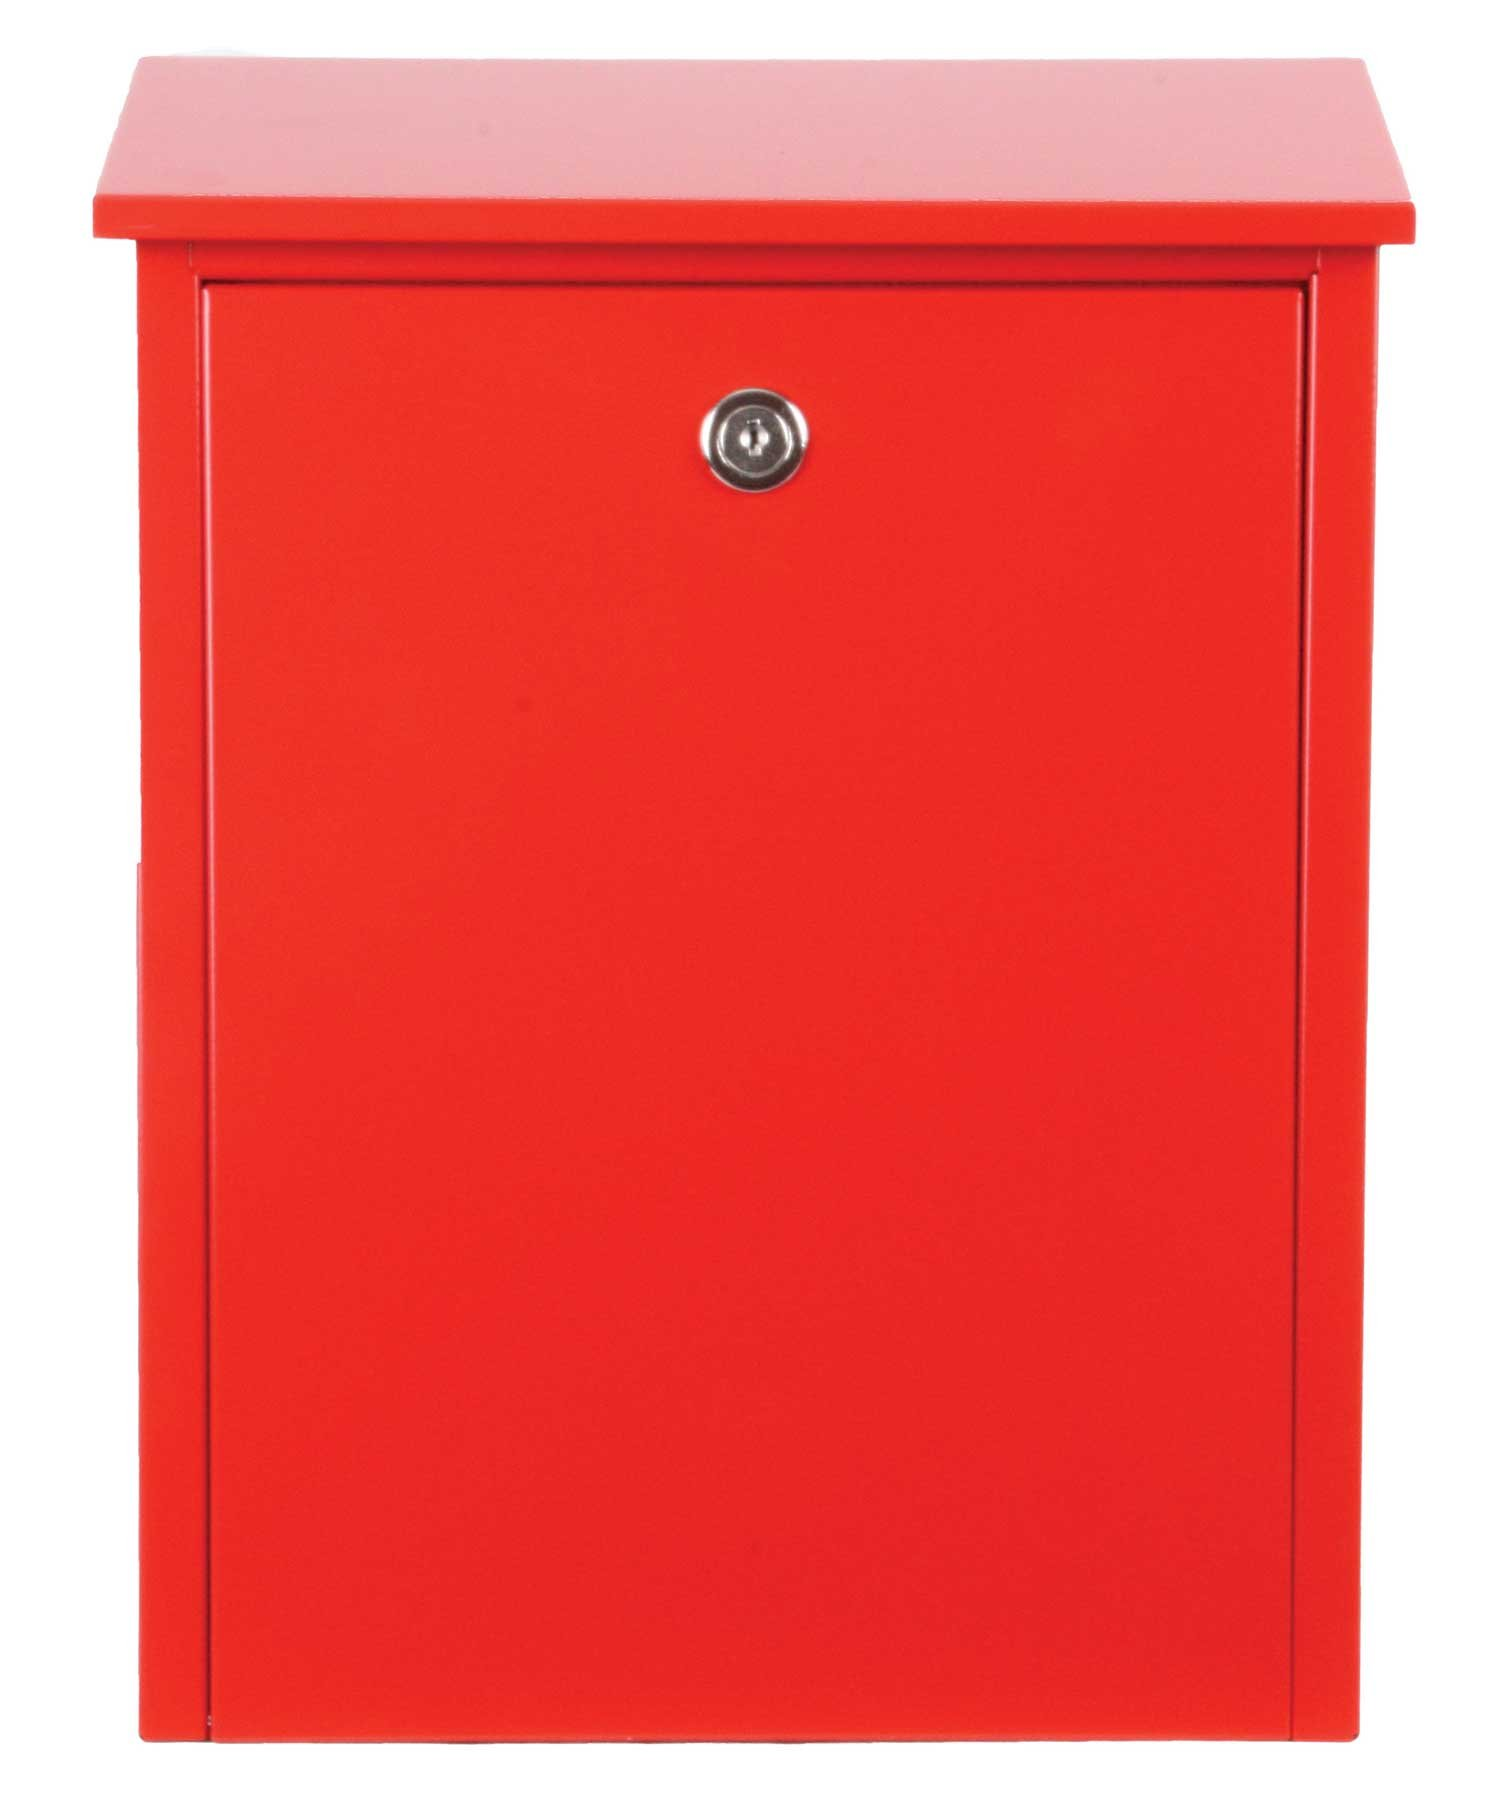 Qualarc Allux 200 Top Loading Wall or Post Mount Locking Galvanized Steel Mailbox in Red